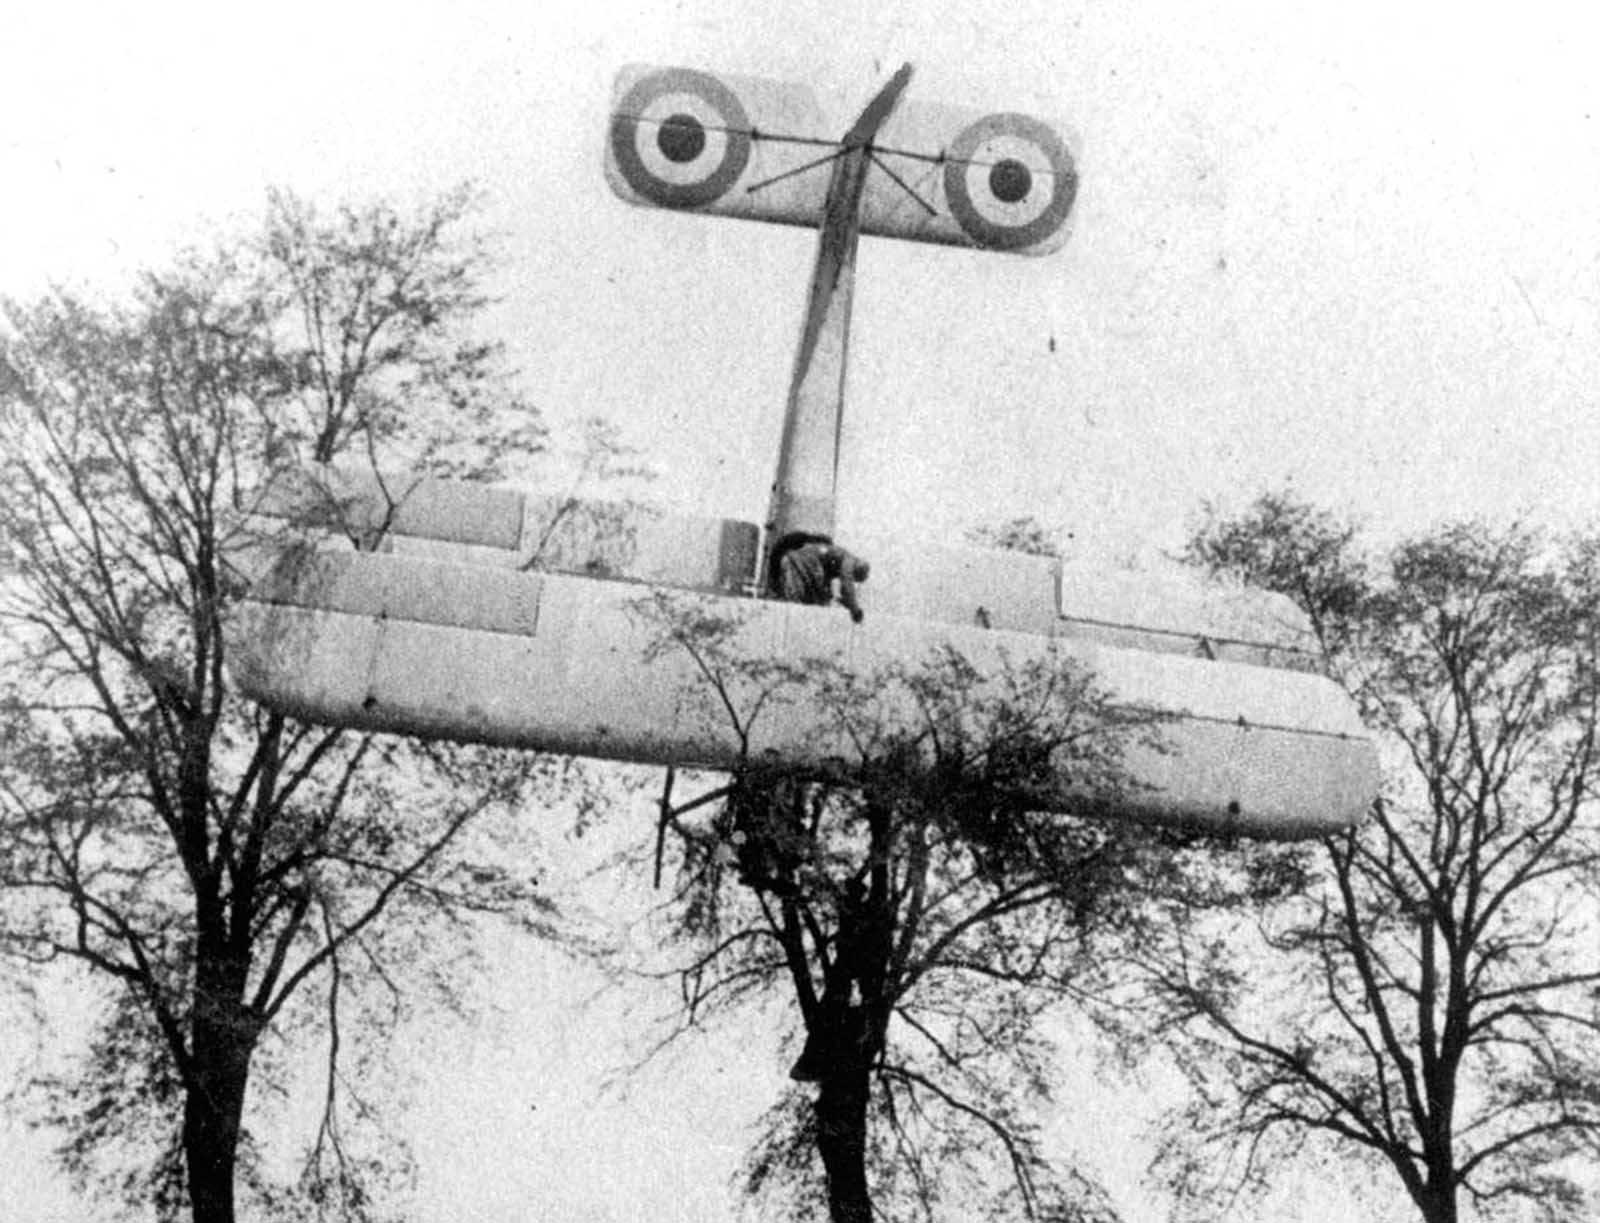 A French pilot made an emergency landing in friendly territory after a failed attempt to attack a German Zeppelin hangar near Brussels, Belgium, in 1915. Soldiers are climbing up the tree where the biplane has landed.